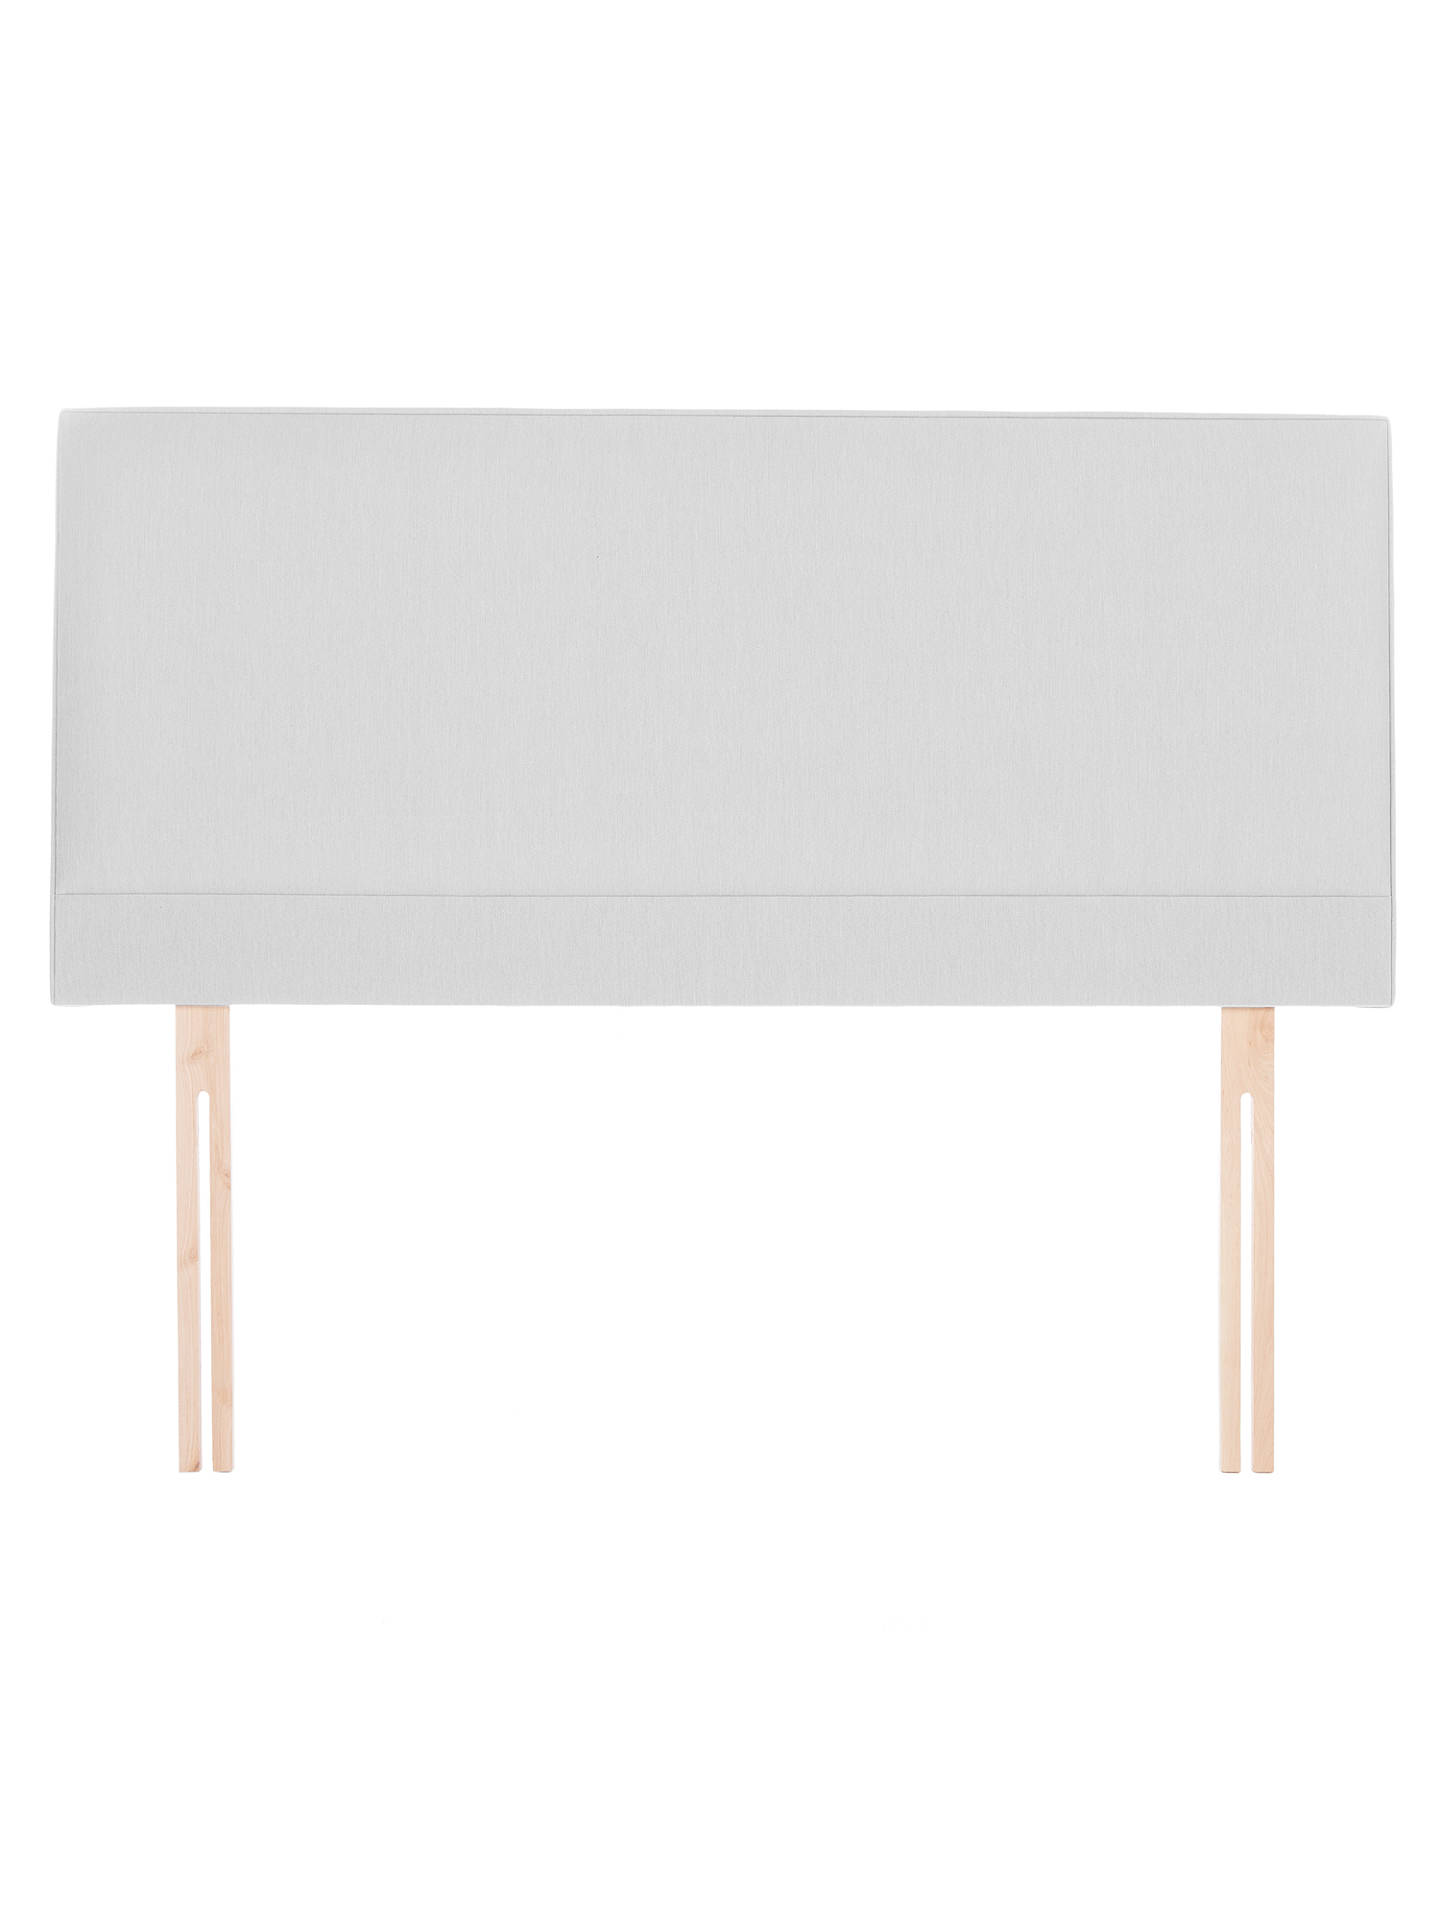 BuyJohn Lewis & Partners Caversham Strutted Headboard, Stone Grey, Double Online at johnlewis.com